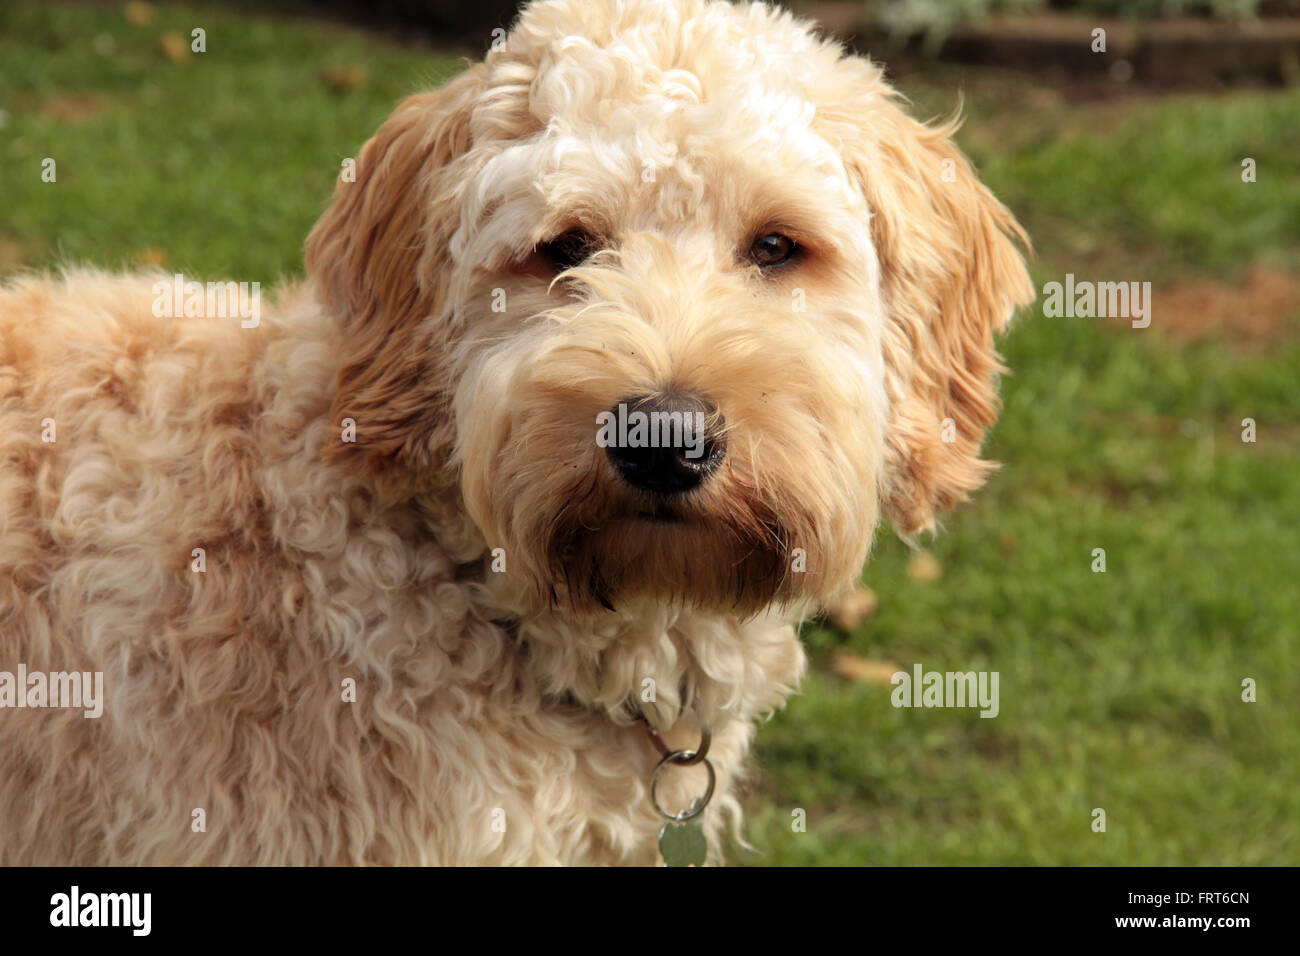 Goldendoodle standing lookin at the camera - Stock Image